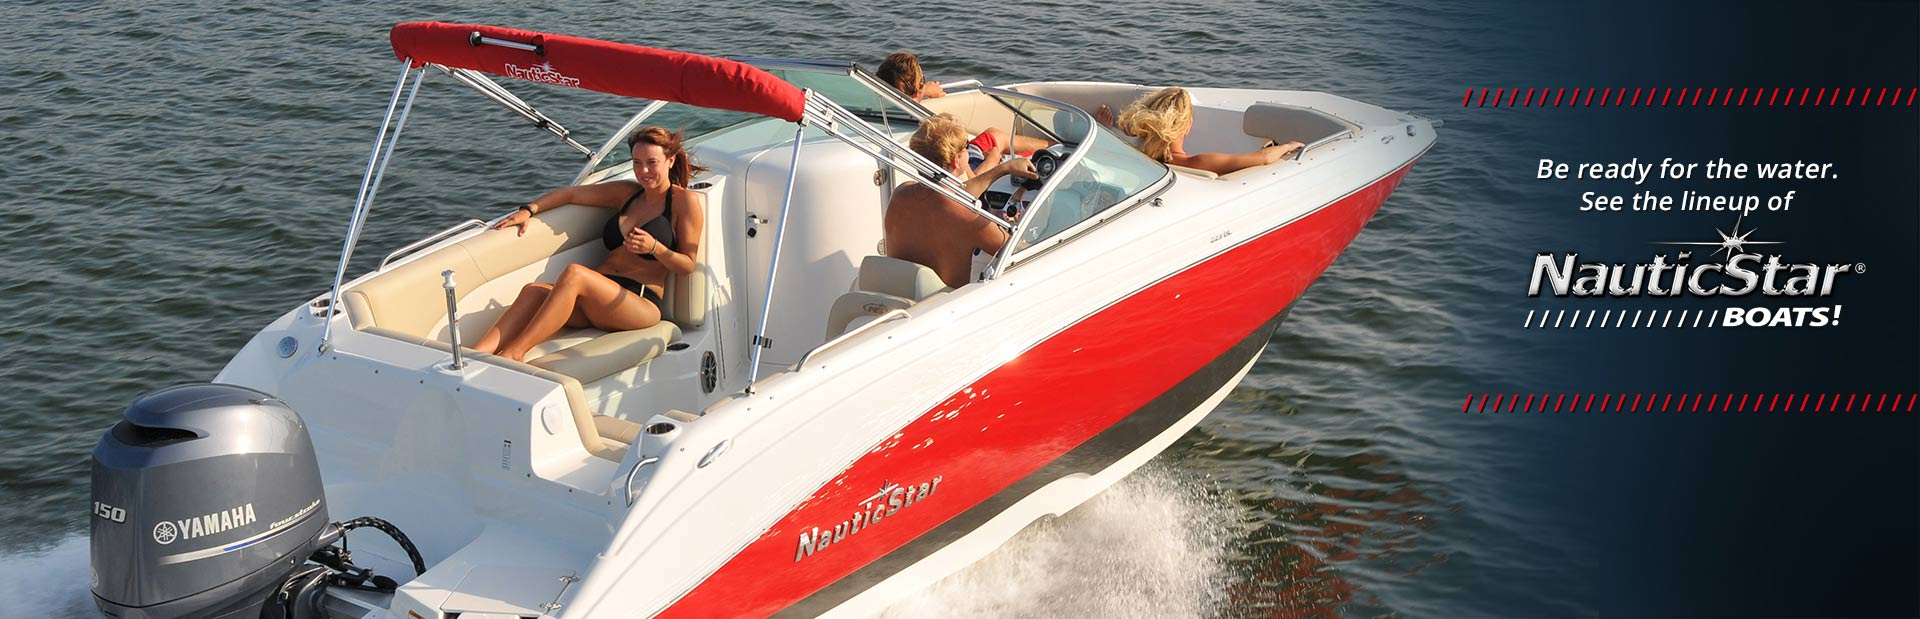 NauticStar Boats: Click here to view the models.